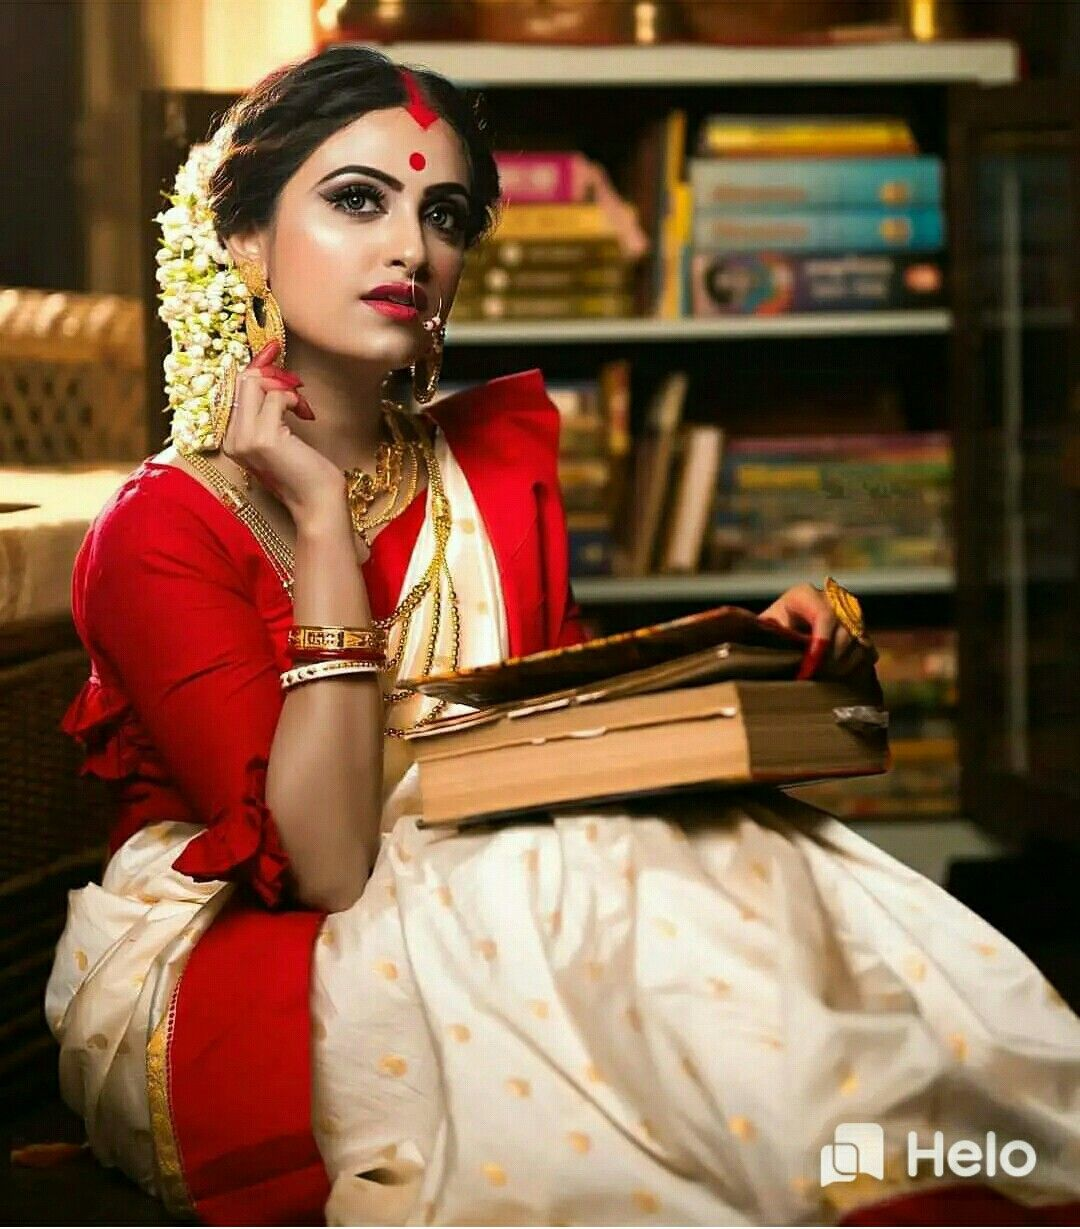 Pin by Raju Basak on raju Fun photoshoot, Saree, Photoshoot